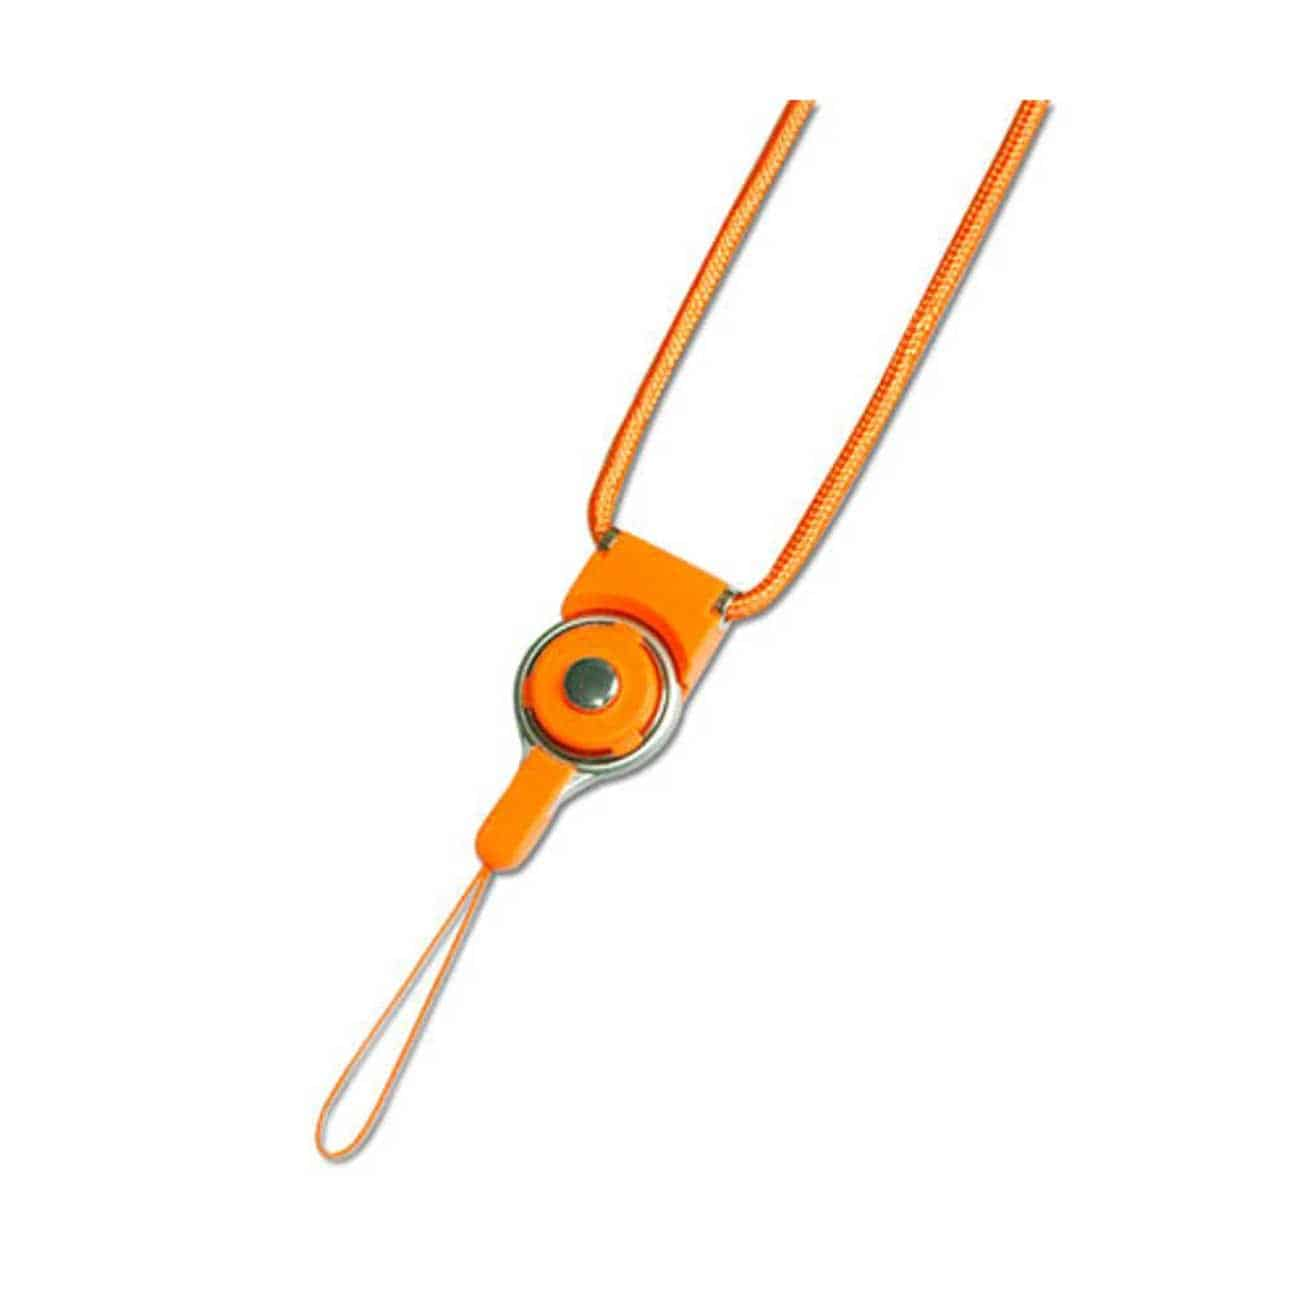 LONG LANYARD STRAP WITH CLIP IN ORANGE